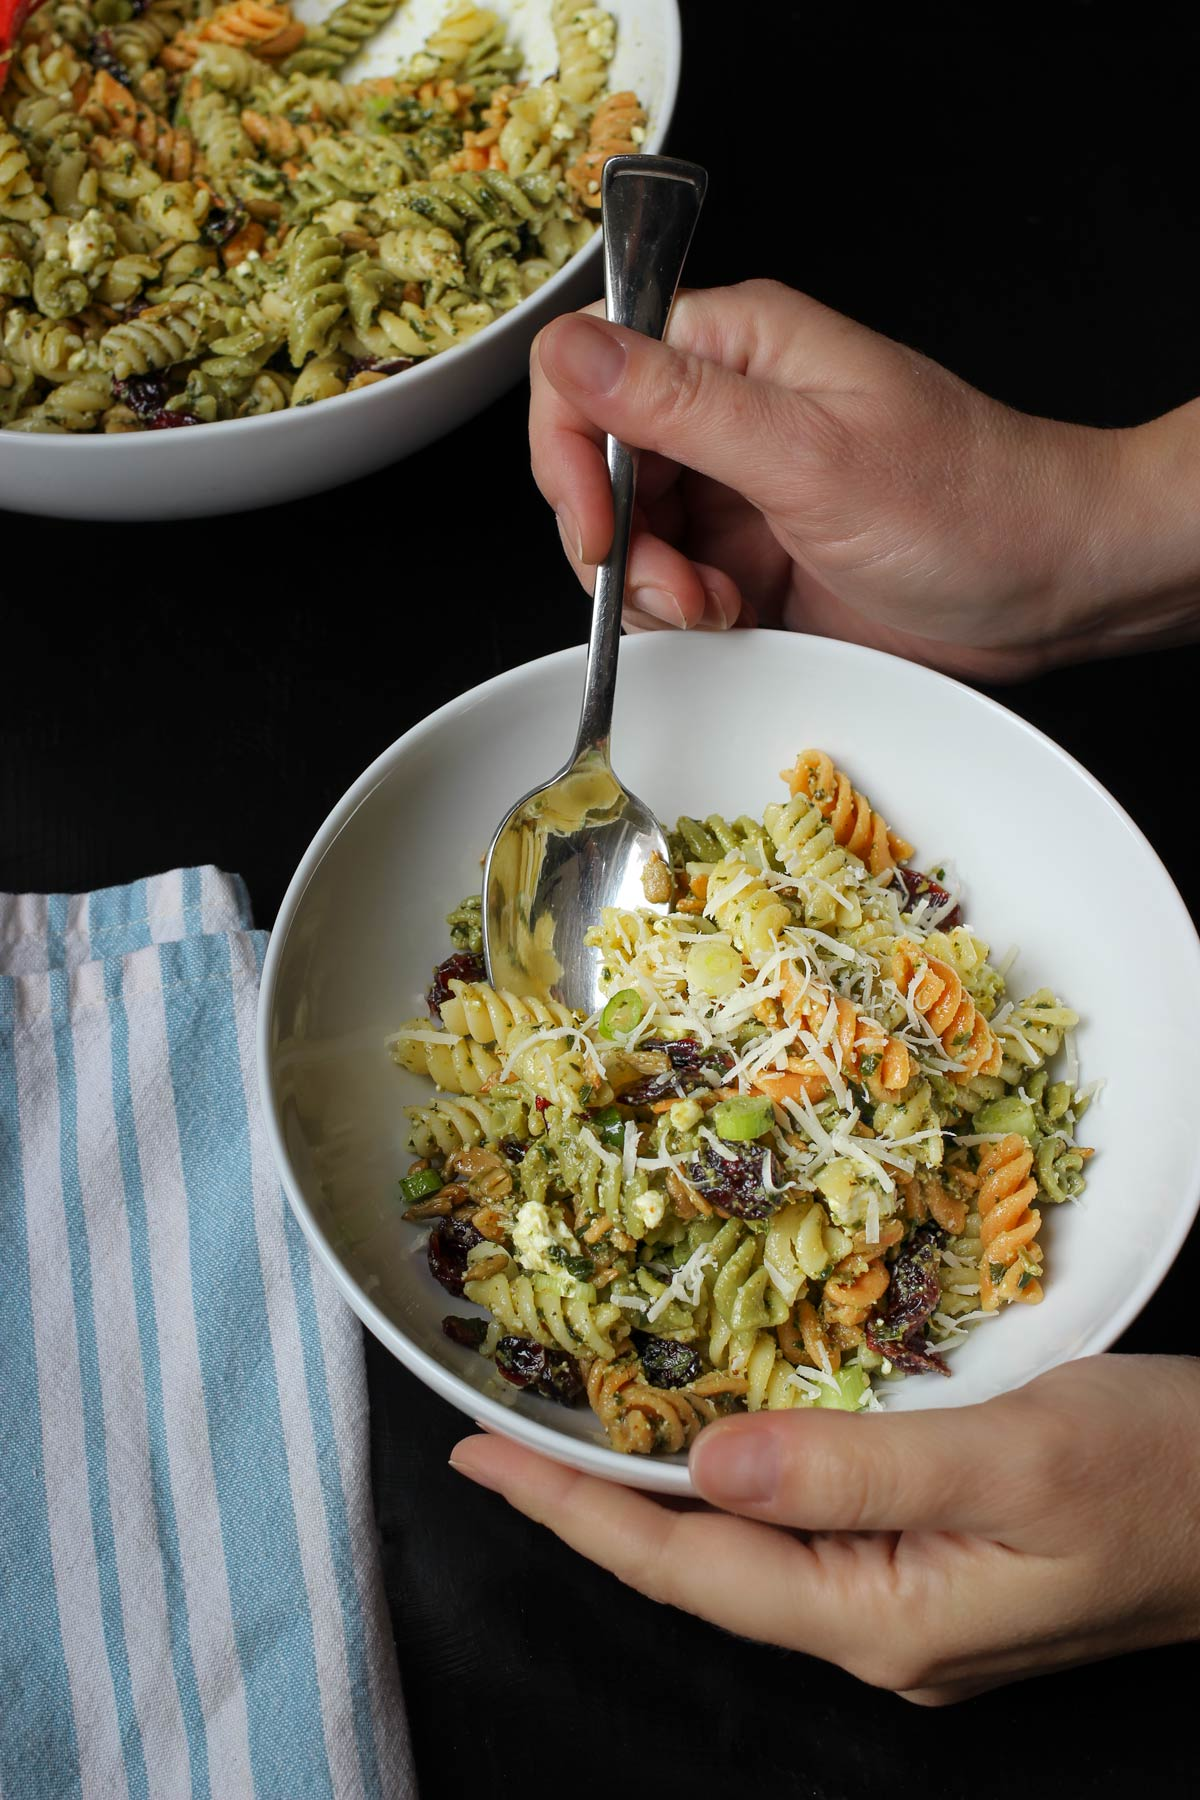 holding spoon in small bowl of pesto pasta salad.